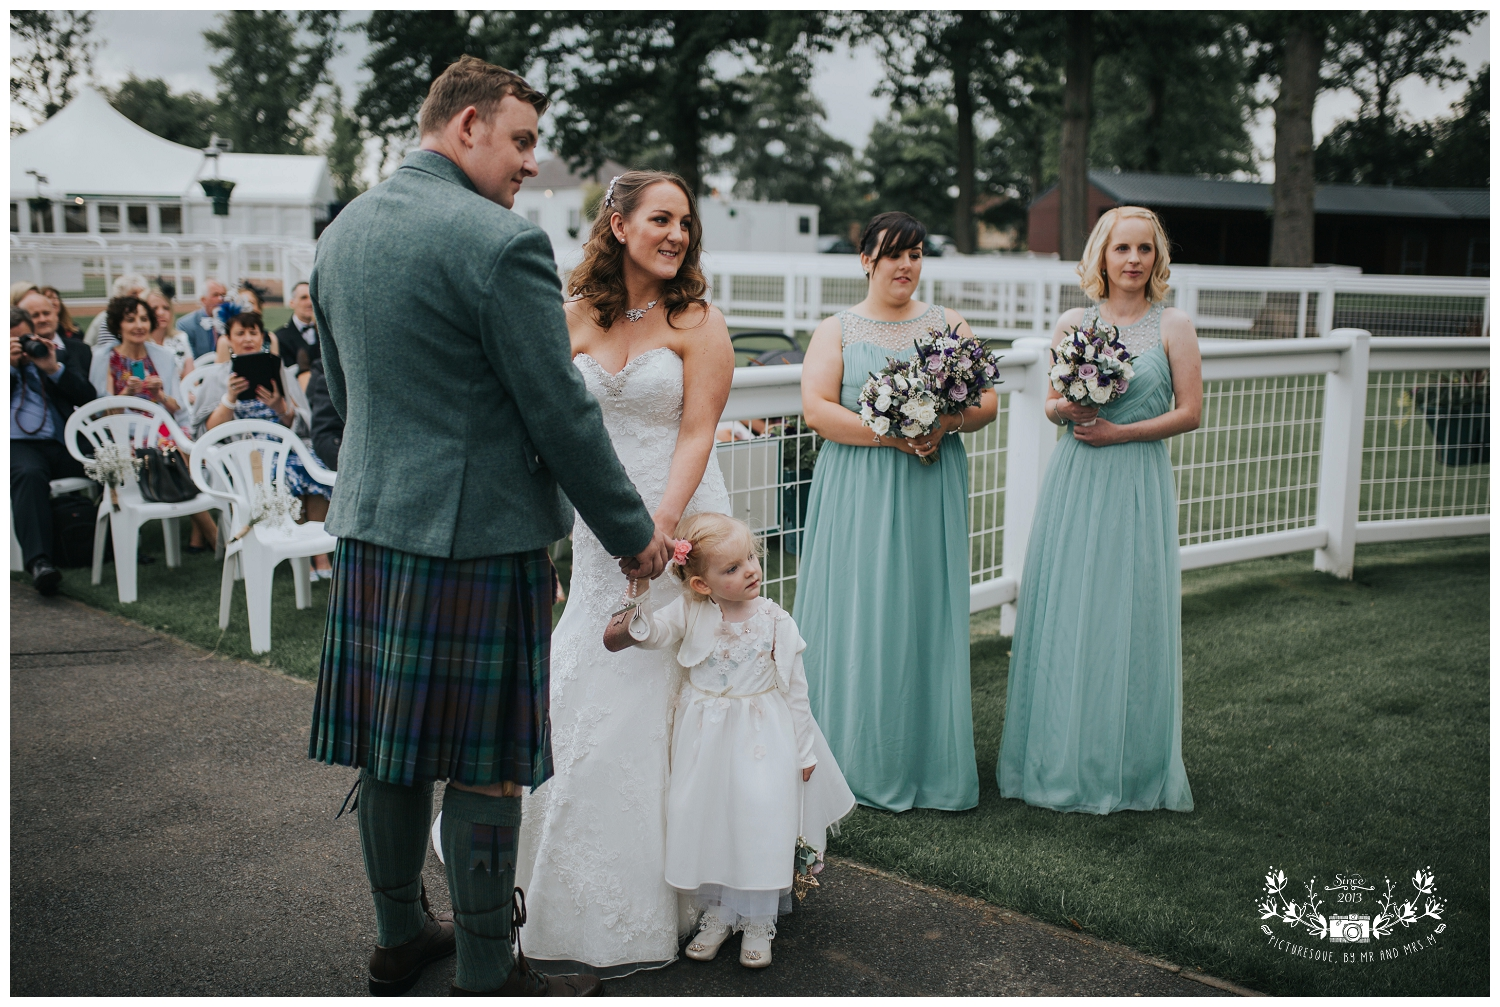 Hamilton Park Racecourse  wedding photography, Picturesque by Mr and Mrs M_0036.jpg